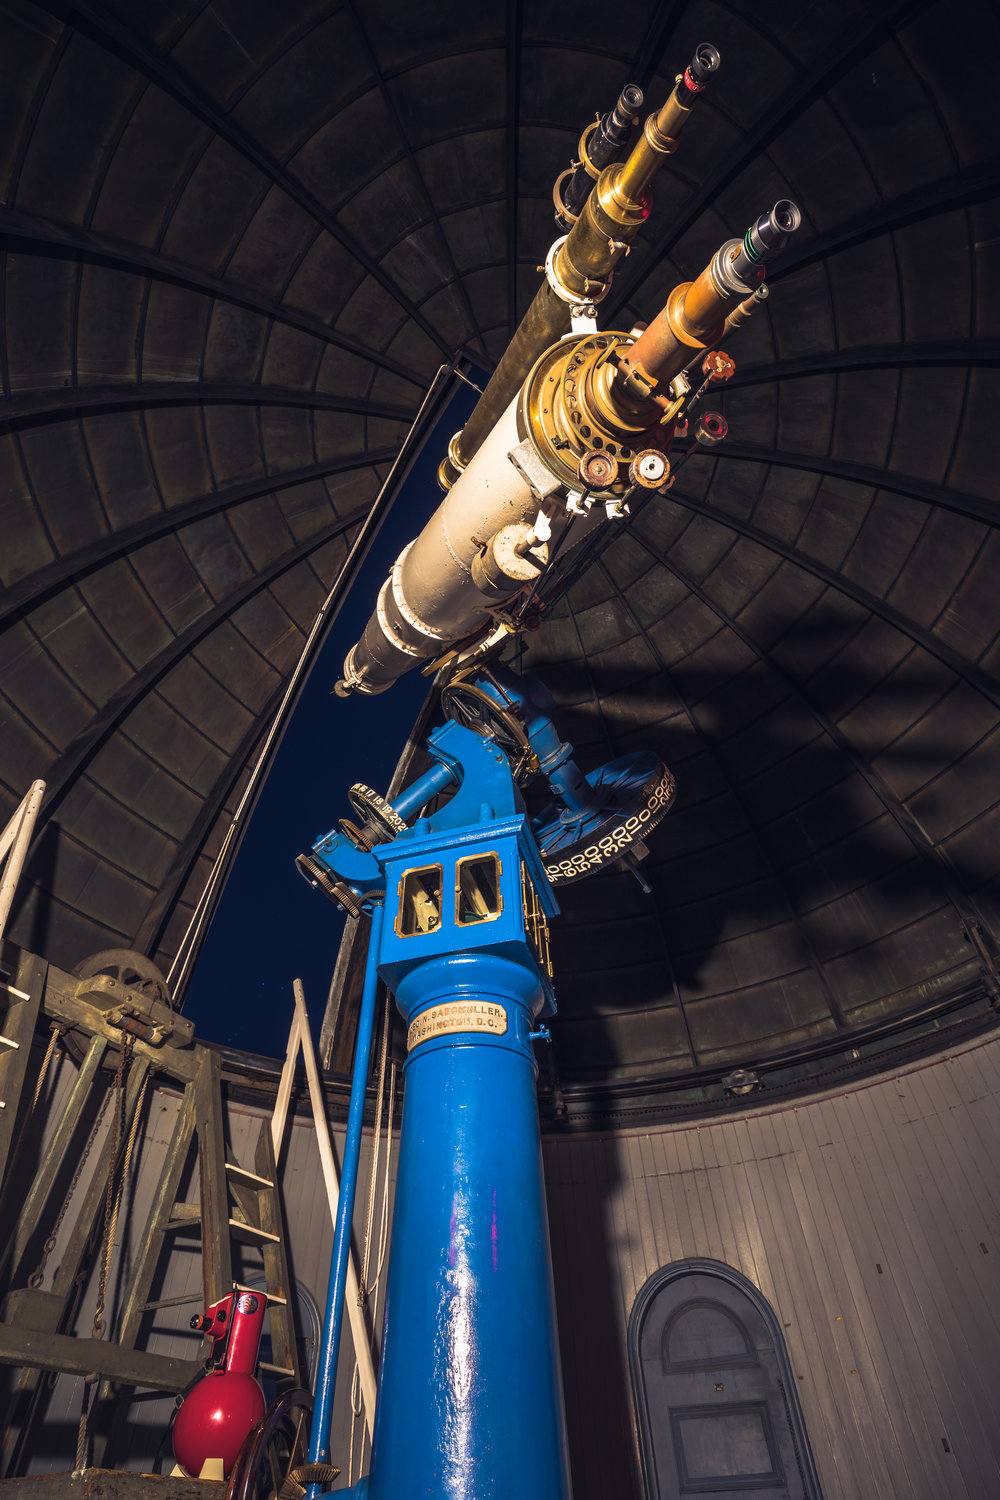 Take a look at the stars through Ladd Observatory's telescope.